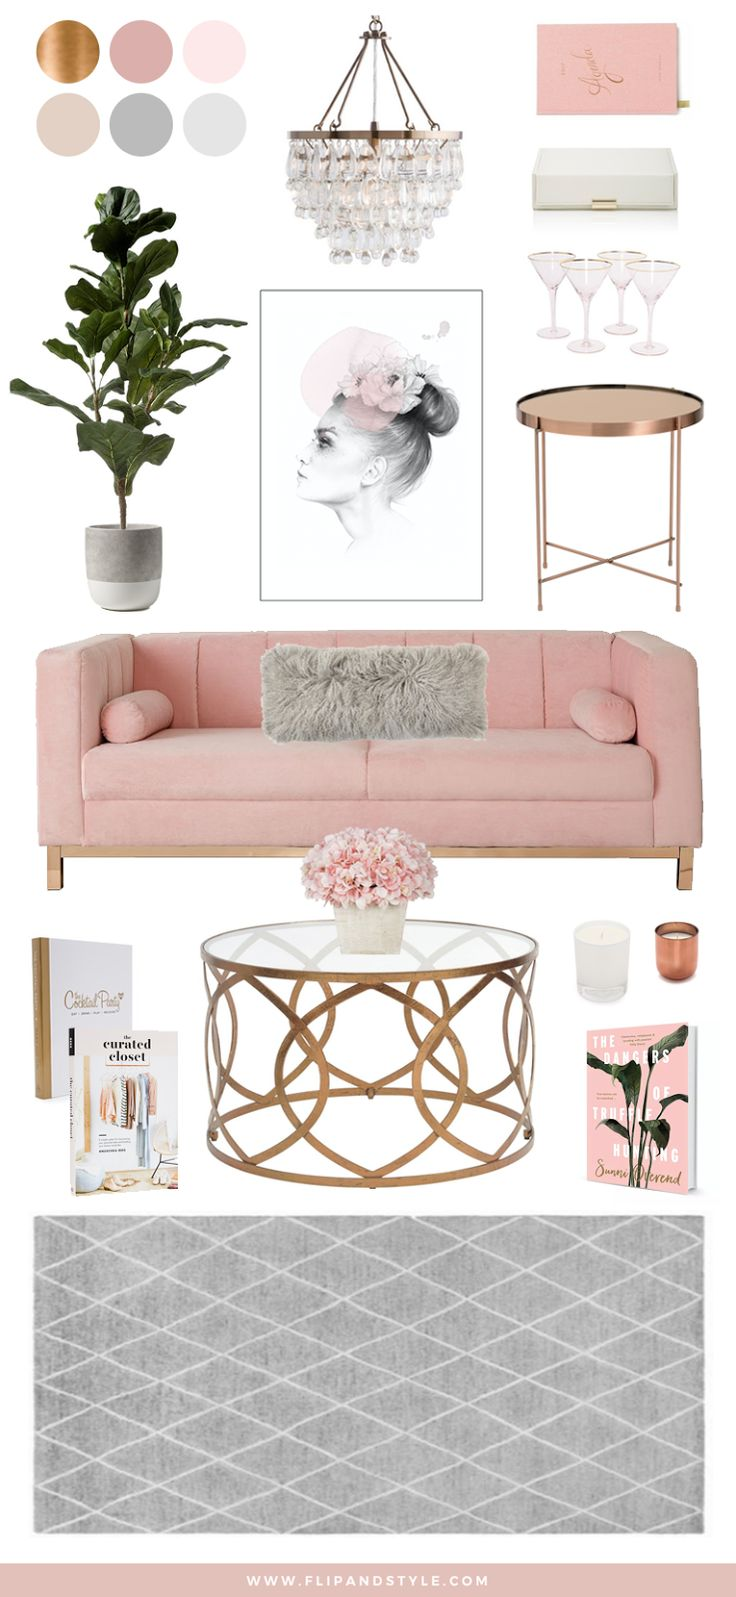 Blush, Copper and Grey Home Decor   Interior inspiration for a living room space   interior design + decor   www.flipandstyle.com